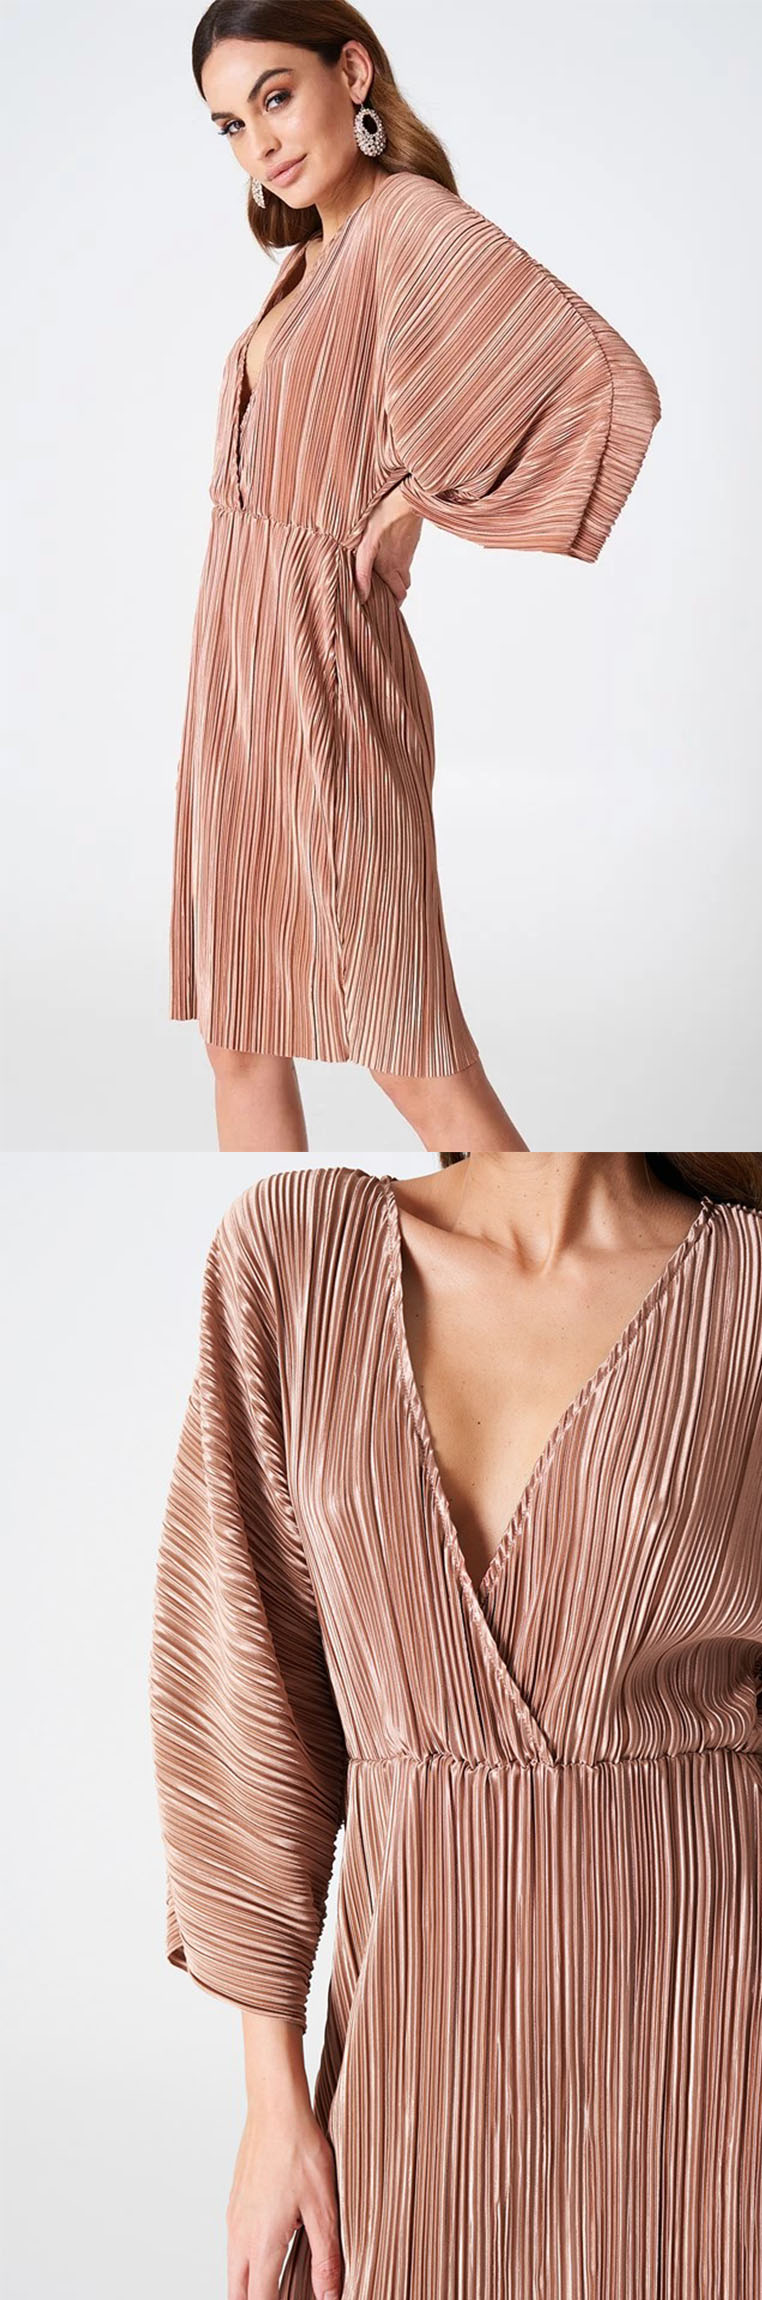 Women 2018 Trendy Summer Pleated Kimono Dress